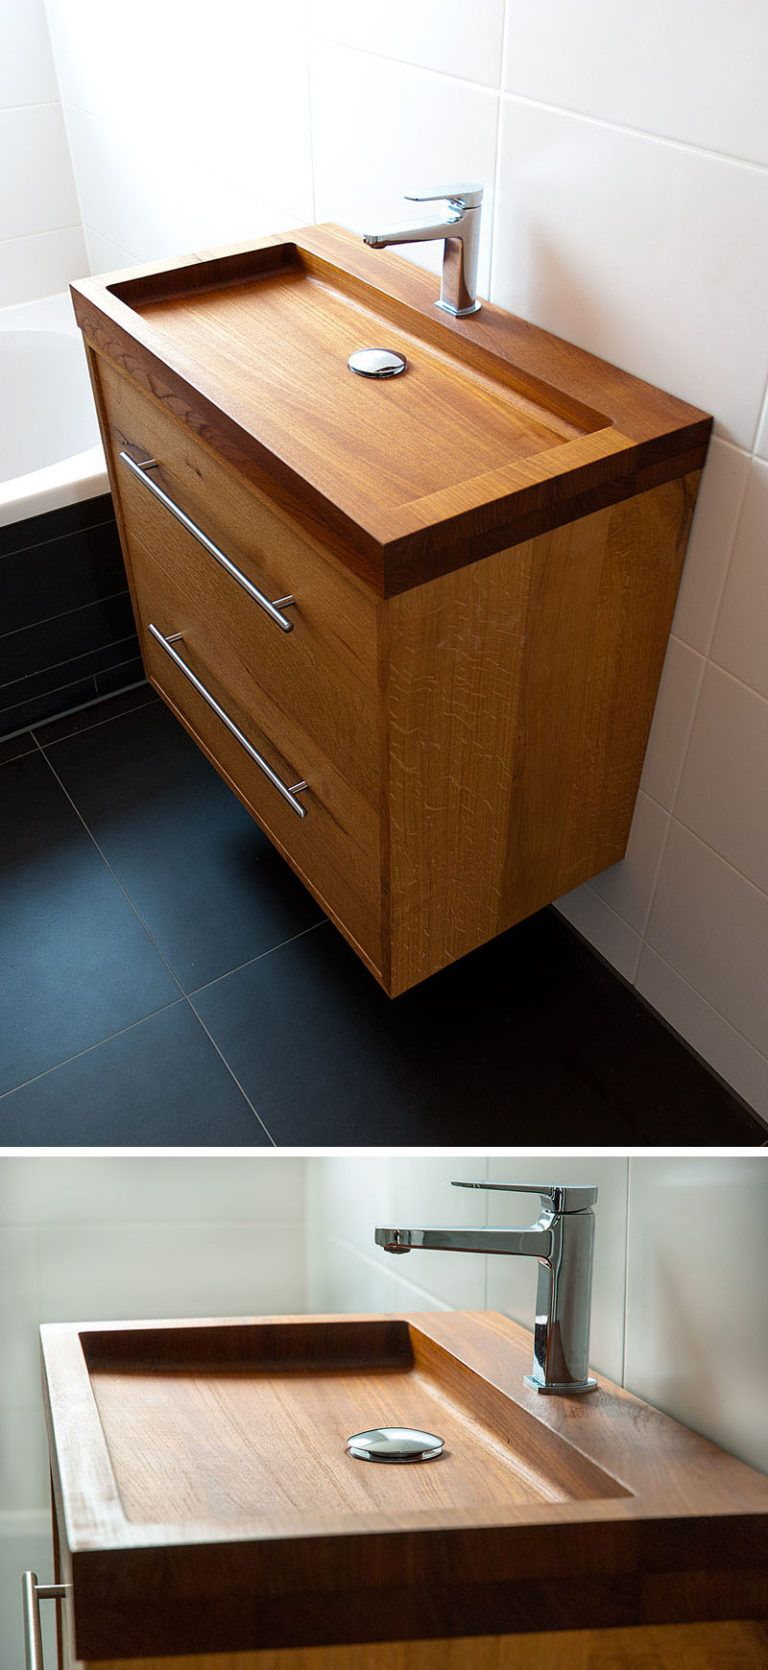 Bathroom Design Idea Install A Wood Sink For A Natural Touch Bad